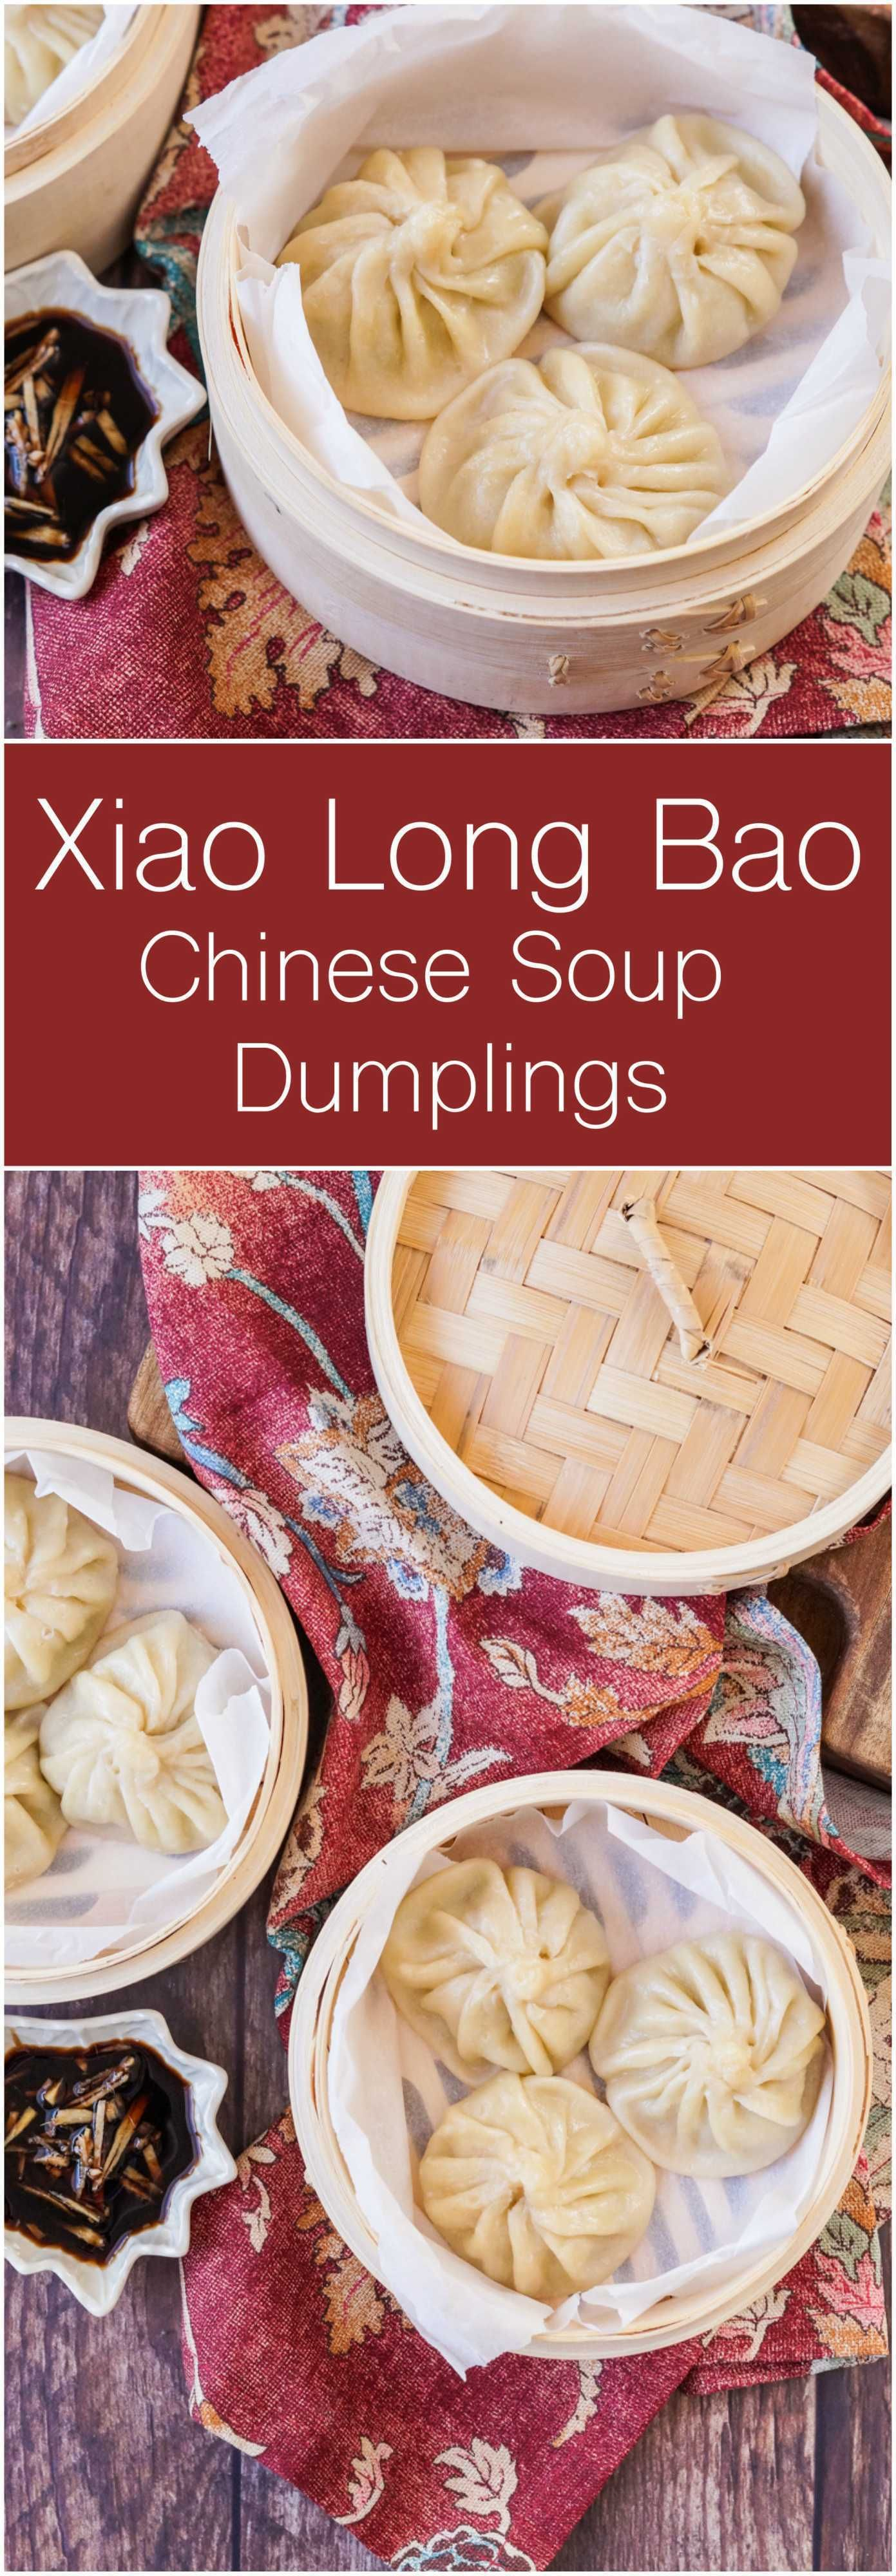 Xiao Long Bao (Chinese Soup Dumplings) and New York City: Chinatown/Little Italy, Lower East Side, Dumbo - Tara's Multicultural Table